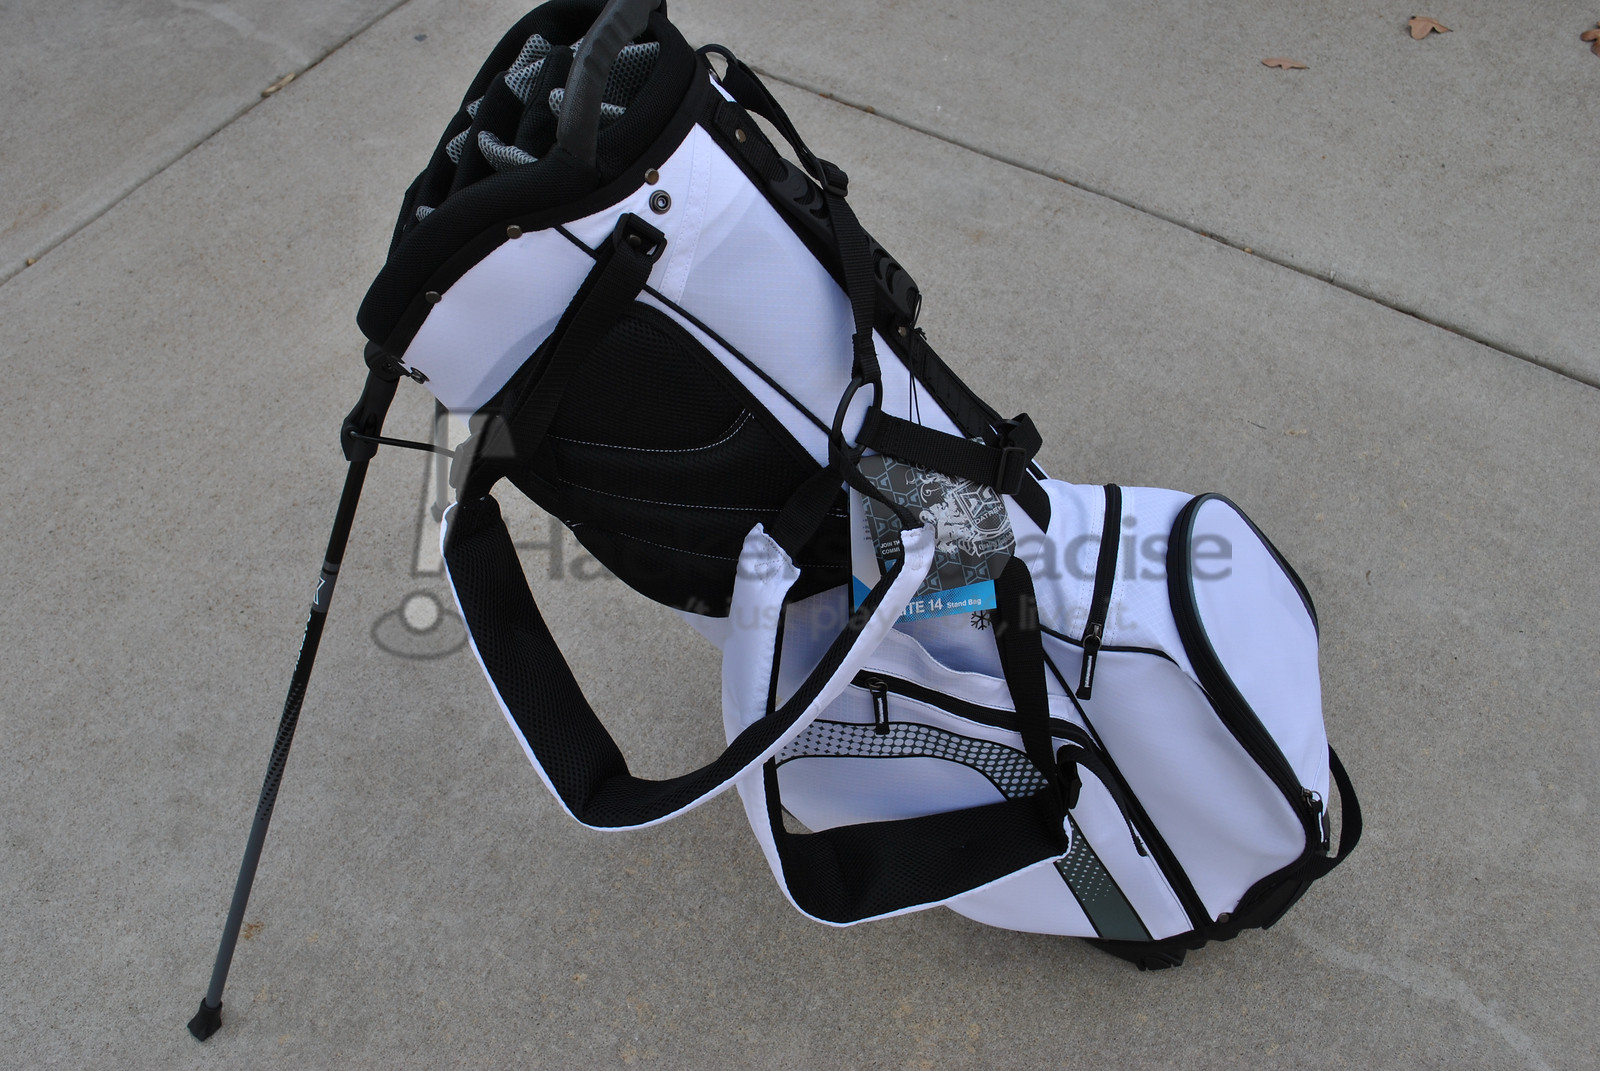 70425a5ce6aa Datrek Go-Lite 14 Golf Bag Review - The Hackers Paradise